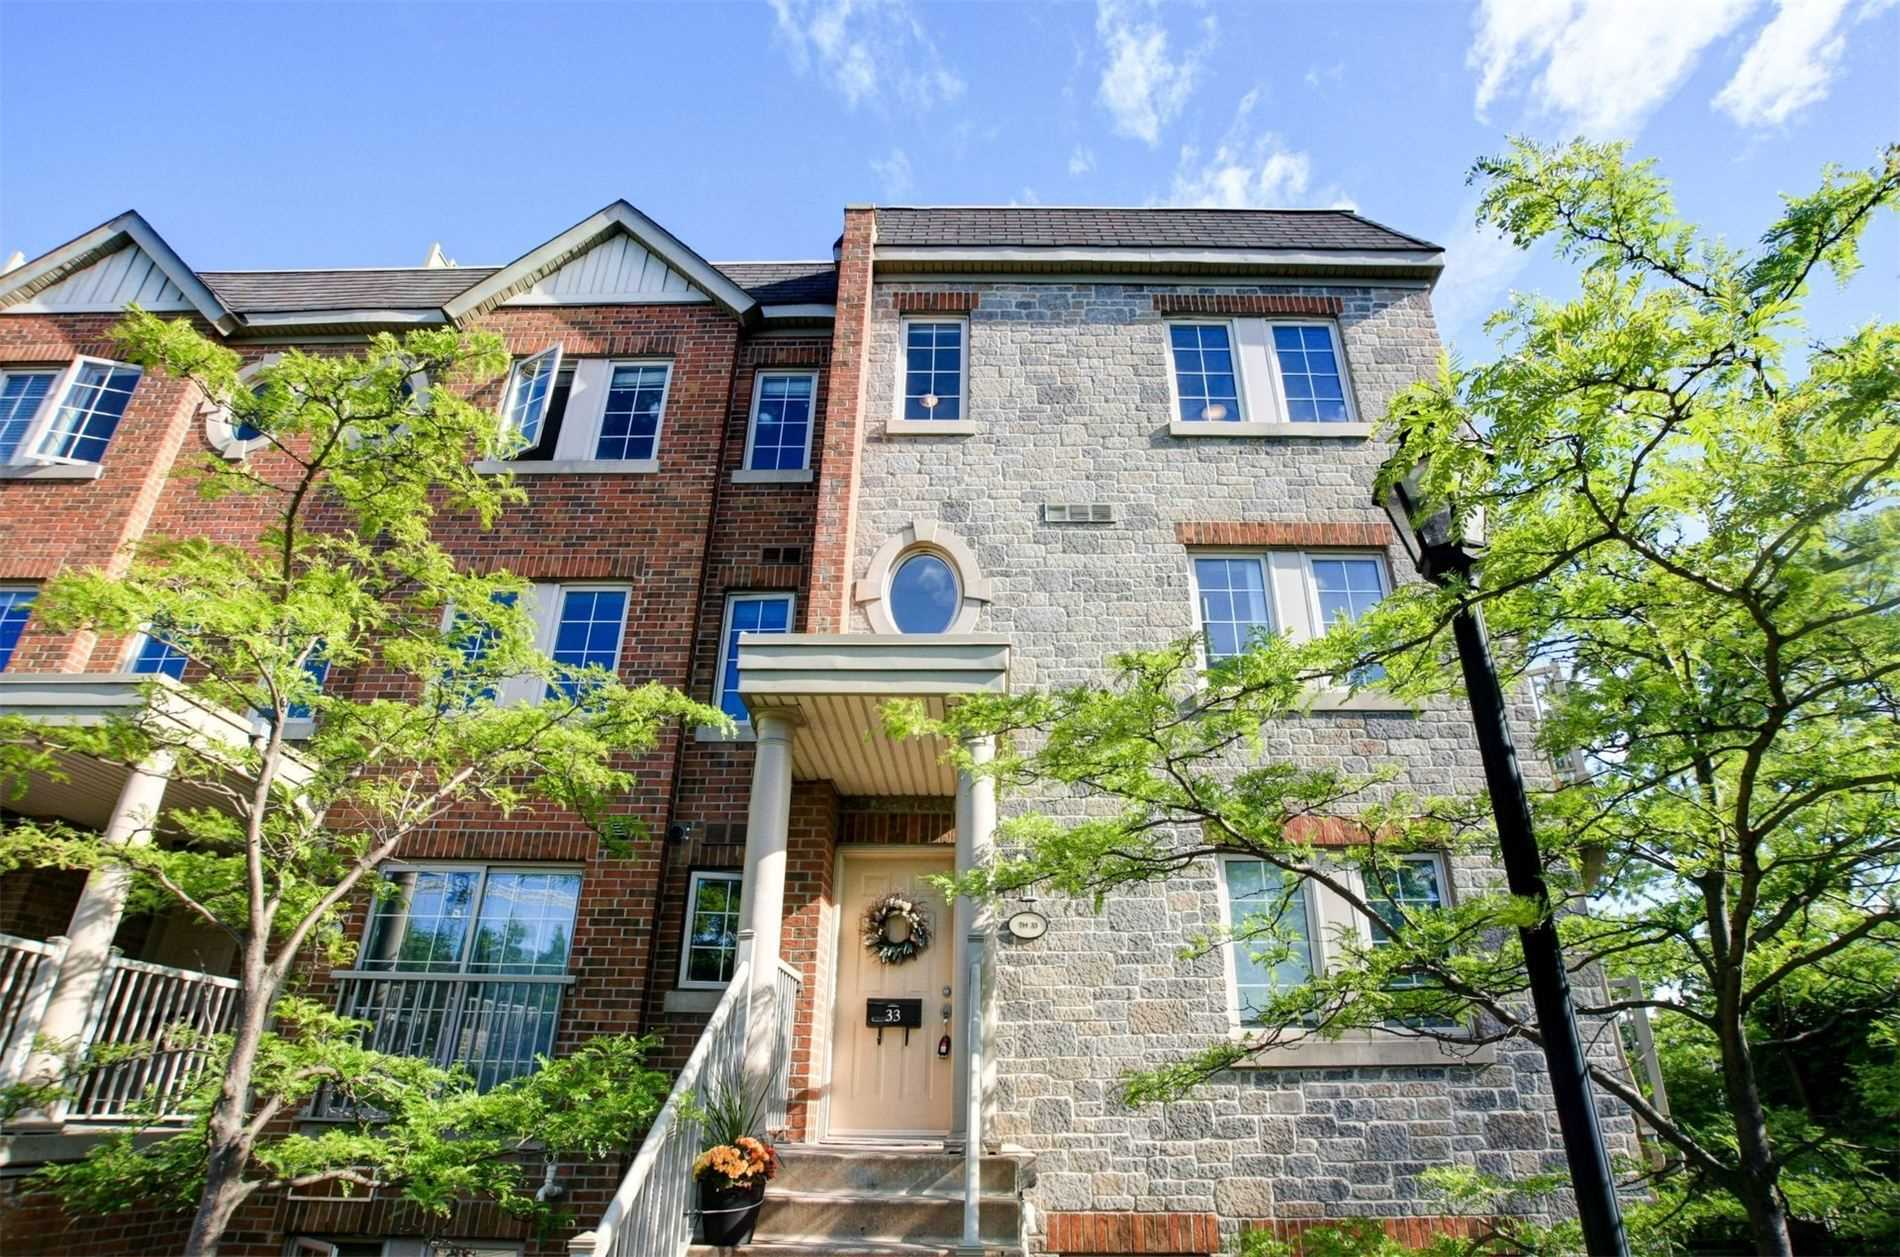 93 The Queensway Ave - W4793190- $899,900